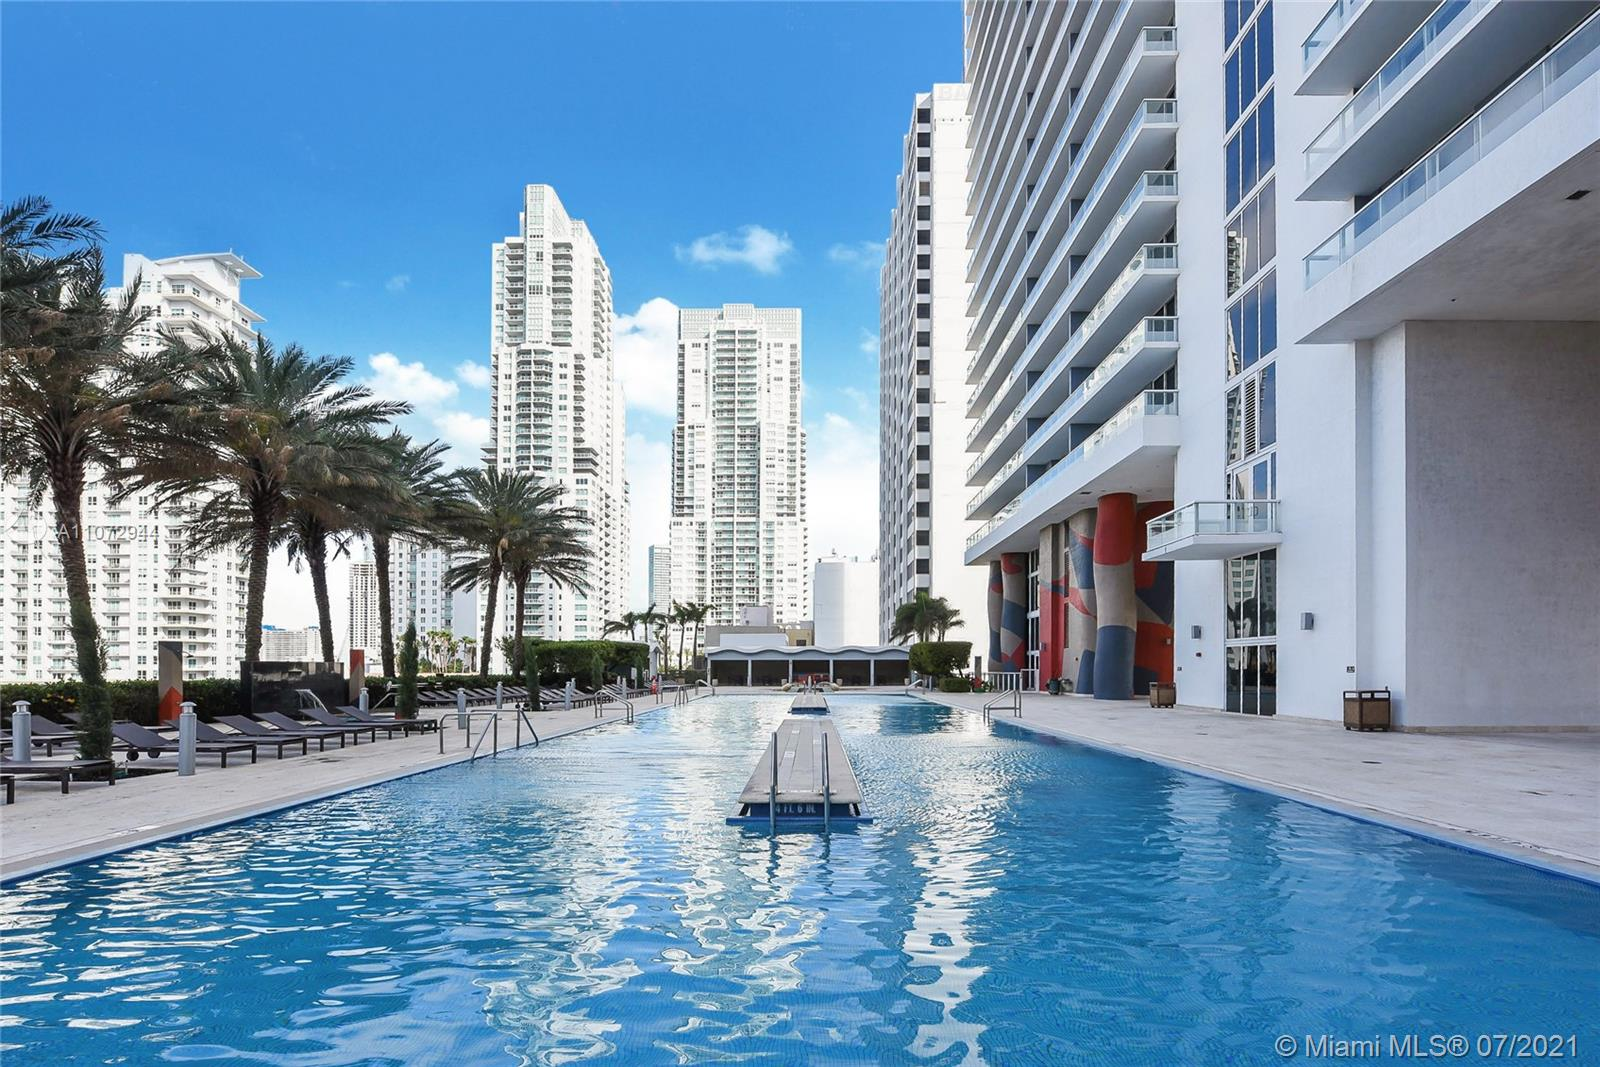 1 bed converted to 2 bed. Full service building with great amenities such as pool, spa, full size gym, front desk. Tastefully furnished apartment with master suite plus enclosed Den/Suite. Located in front of bayside very close to restaurants and shops. Unit can be rented once a month. No Airbnb allowed.